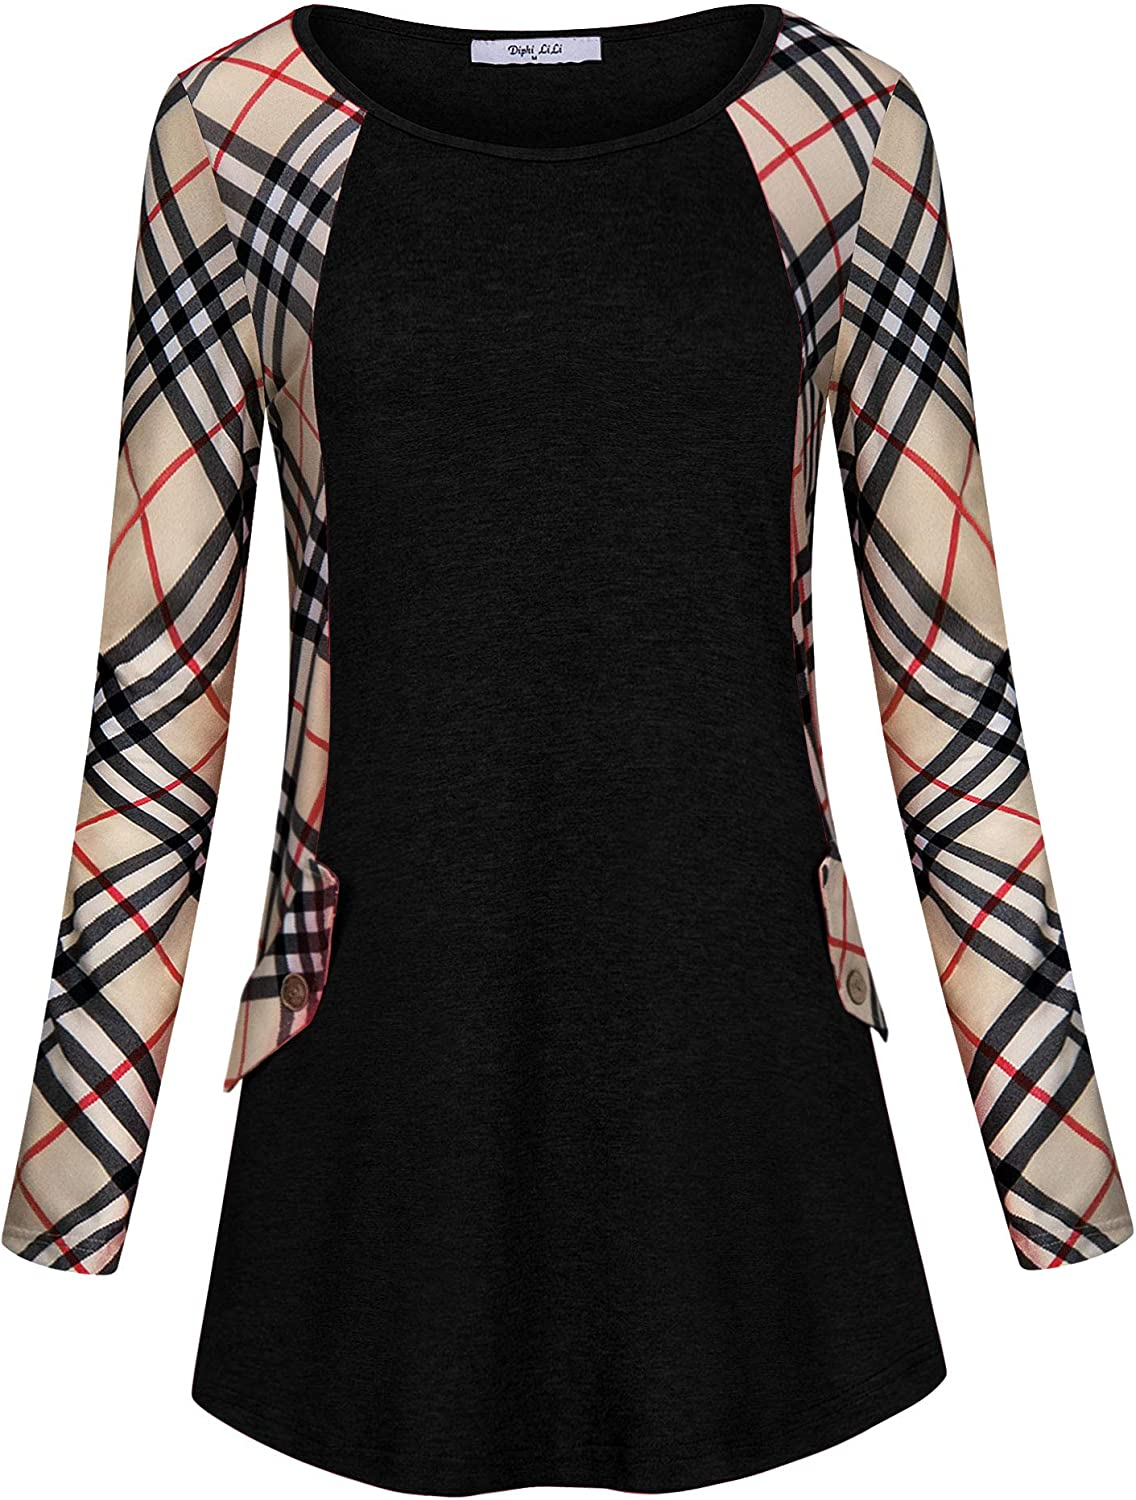 Diphi LiLi Women's Casual Plaid Long Sleeve with Pocket Loose Fit Blouse Tunic Tops